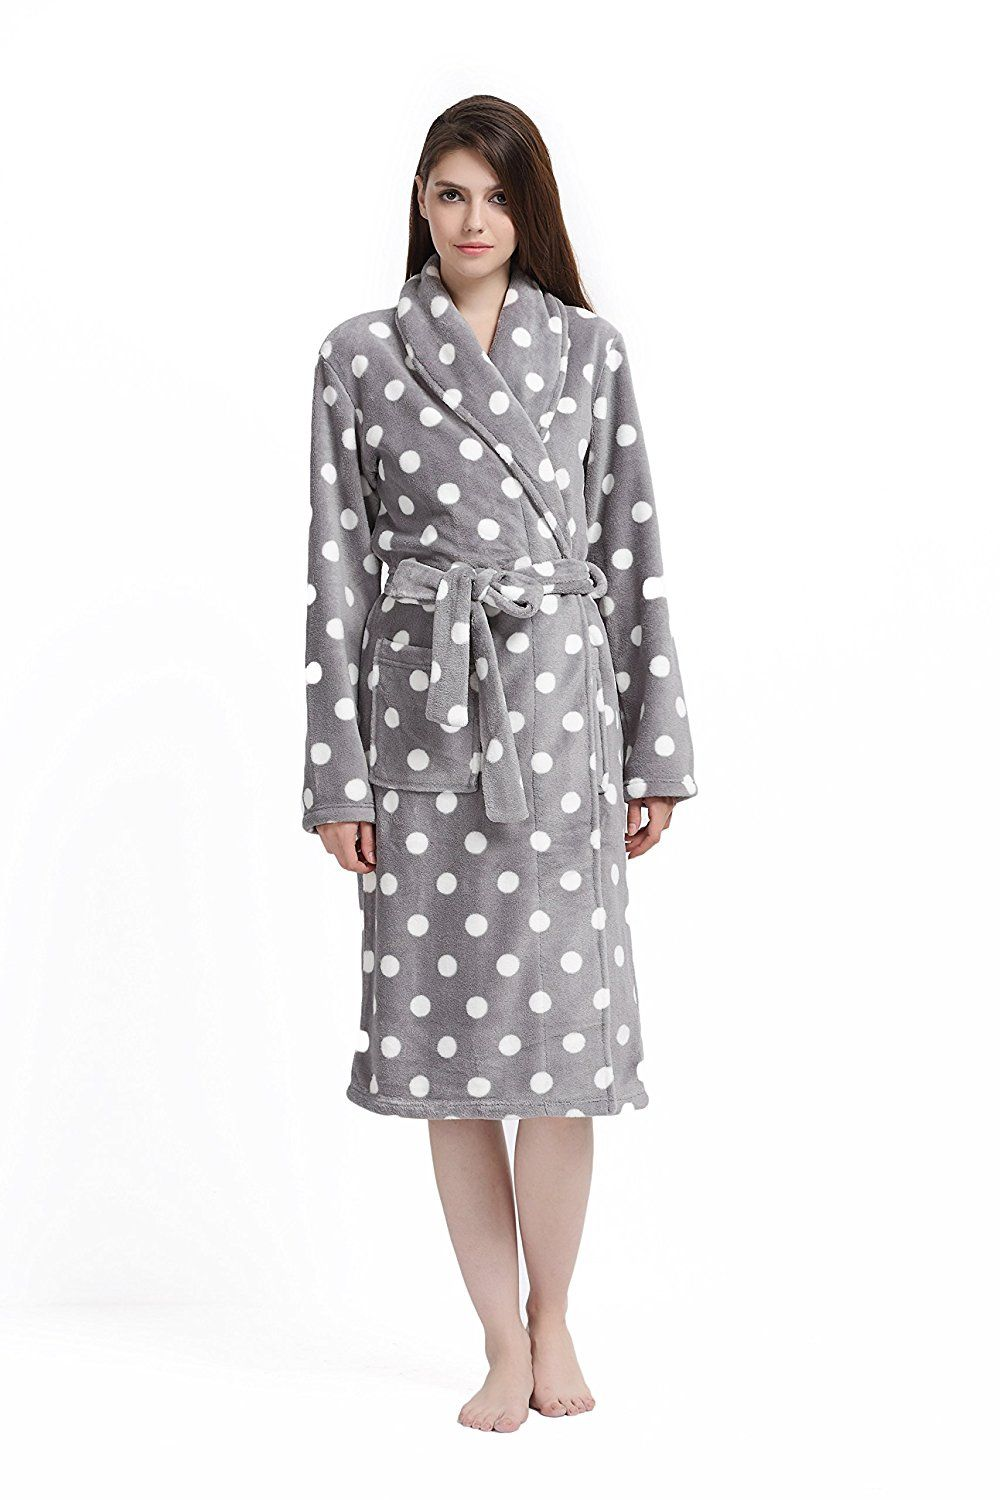 Xmas Sky Women s and Men s Coral Fleece Bath Robe Dressing Gown Housecoat  Bathrobe     This is an Amazon Affiliate link. Be sure to check out this  awesome ... 98ee8c7eb